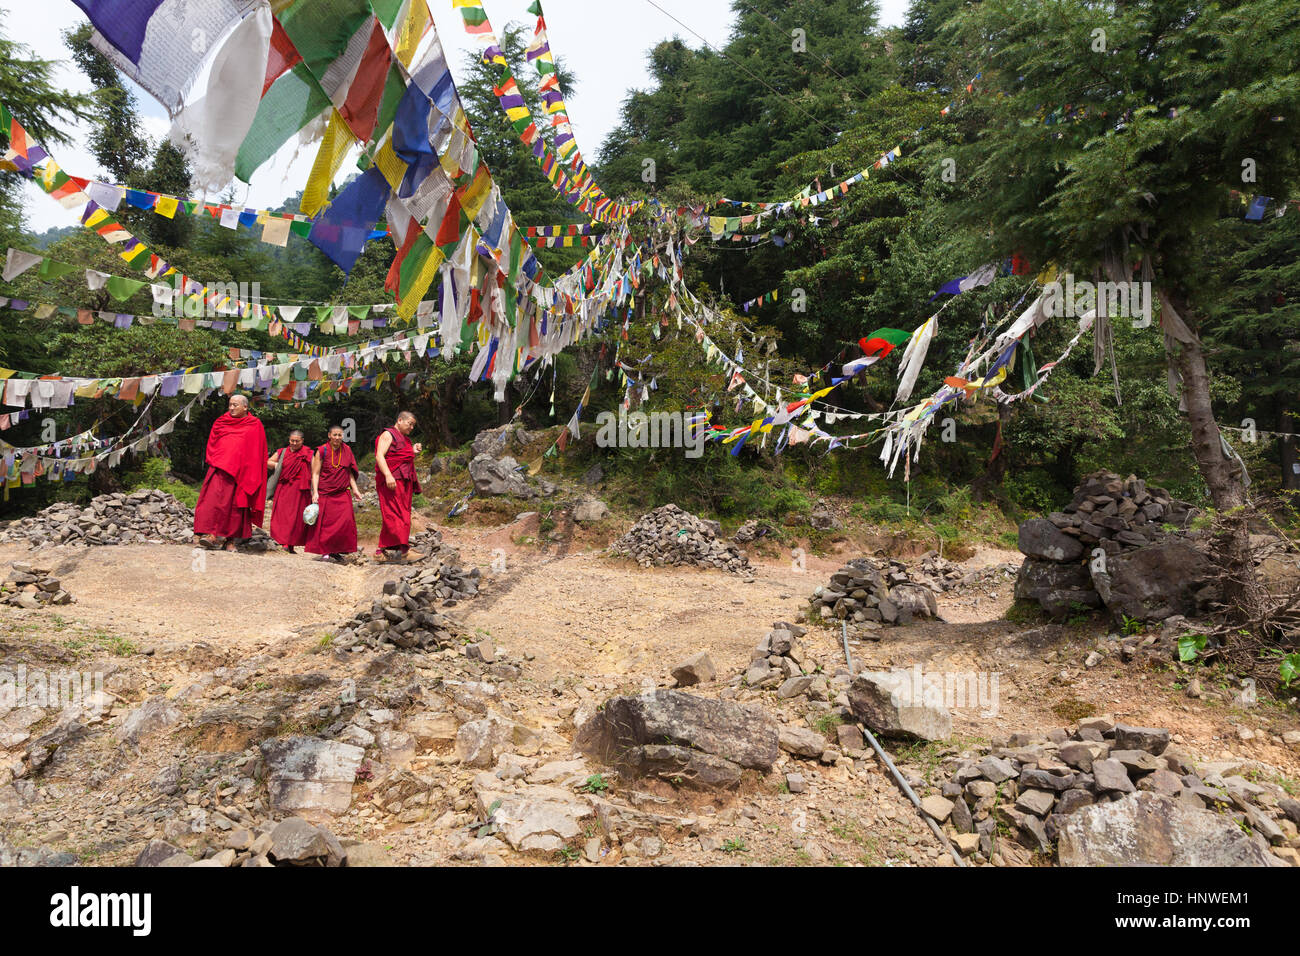 Dharamsala, India - 27 September 2014: Buddhist monks walking under prayer flags in the mountains near McLeod Ganj - Stock Image